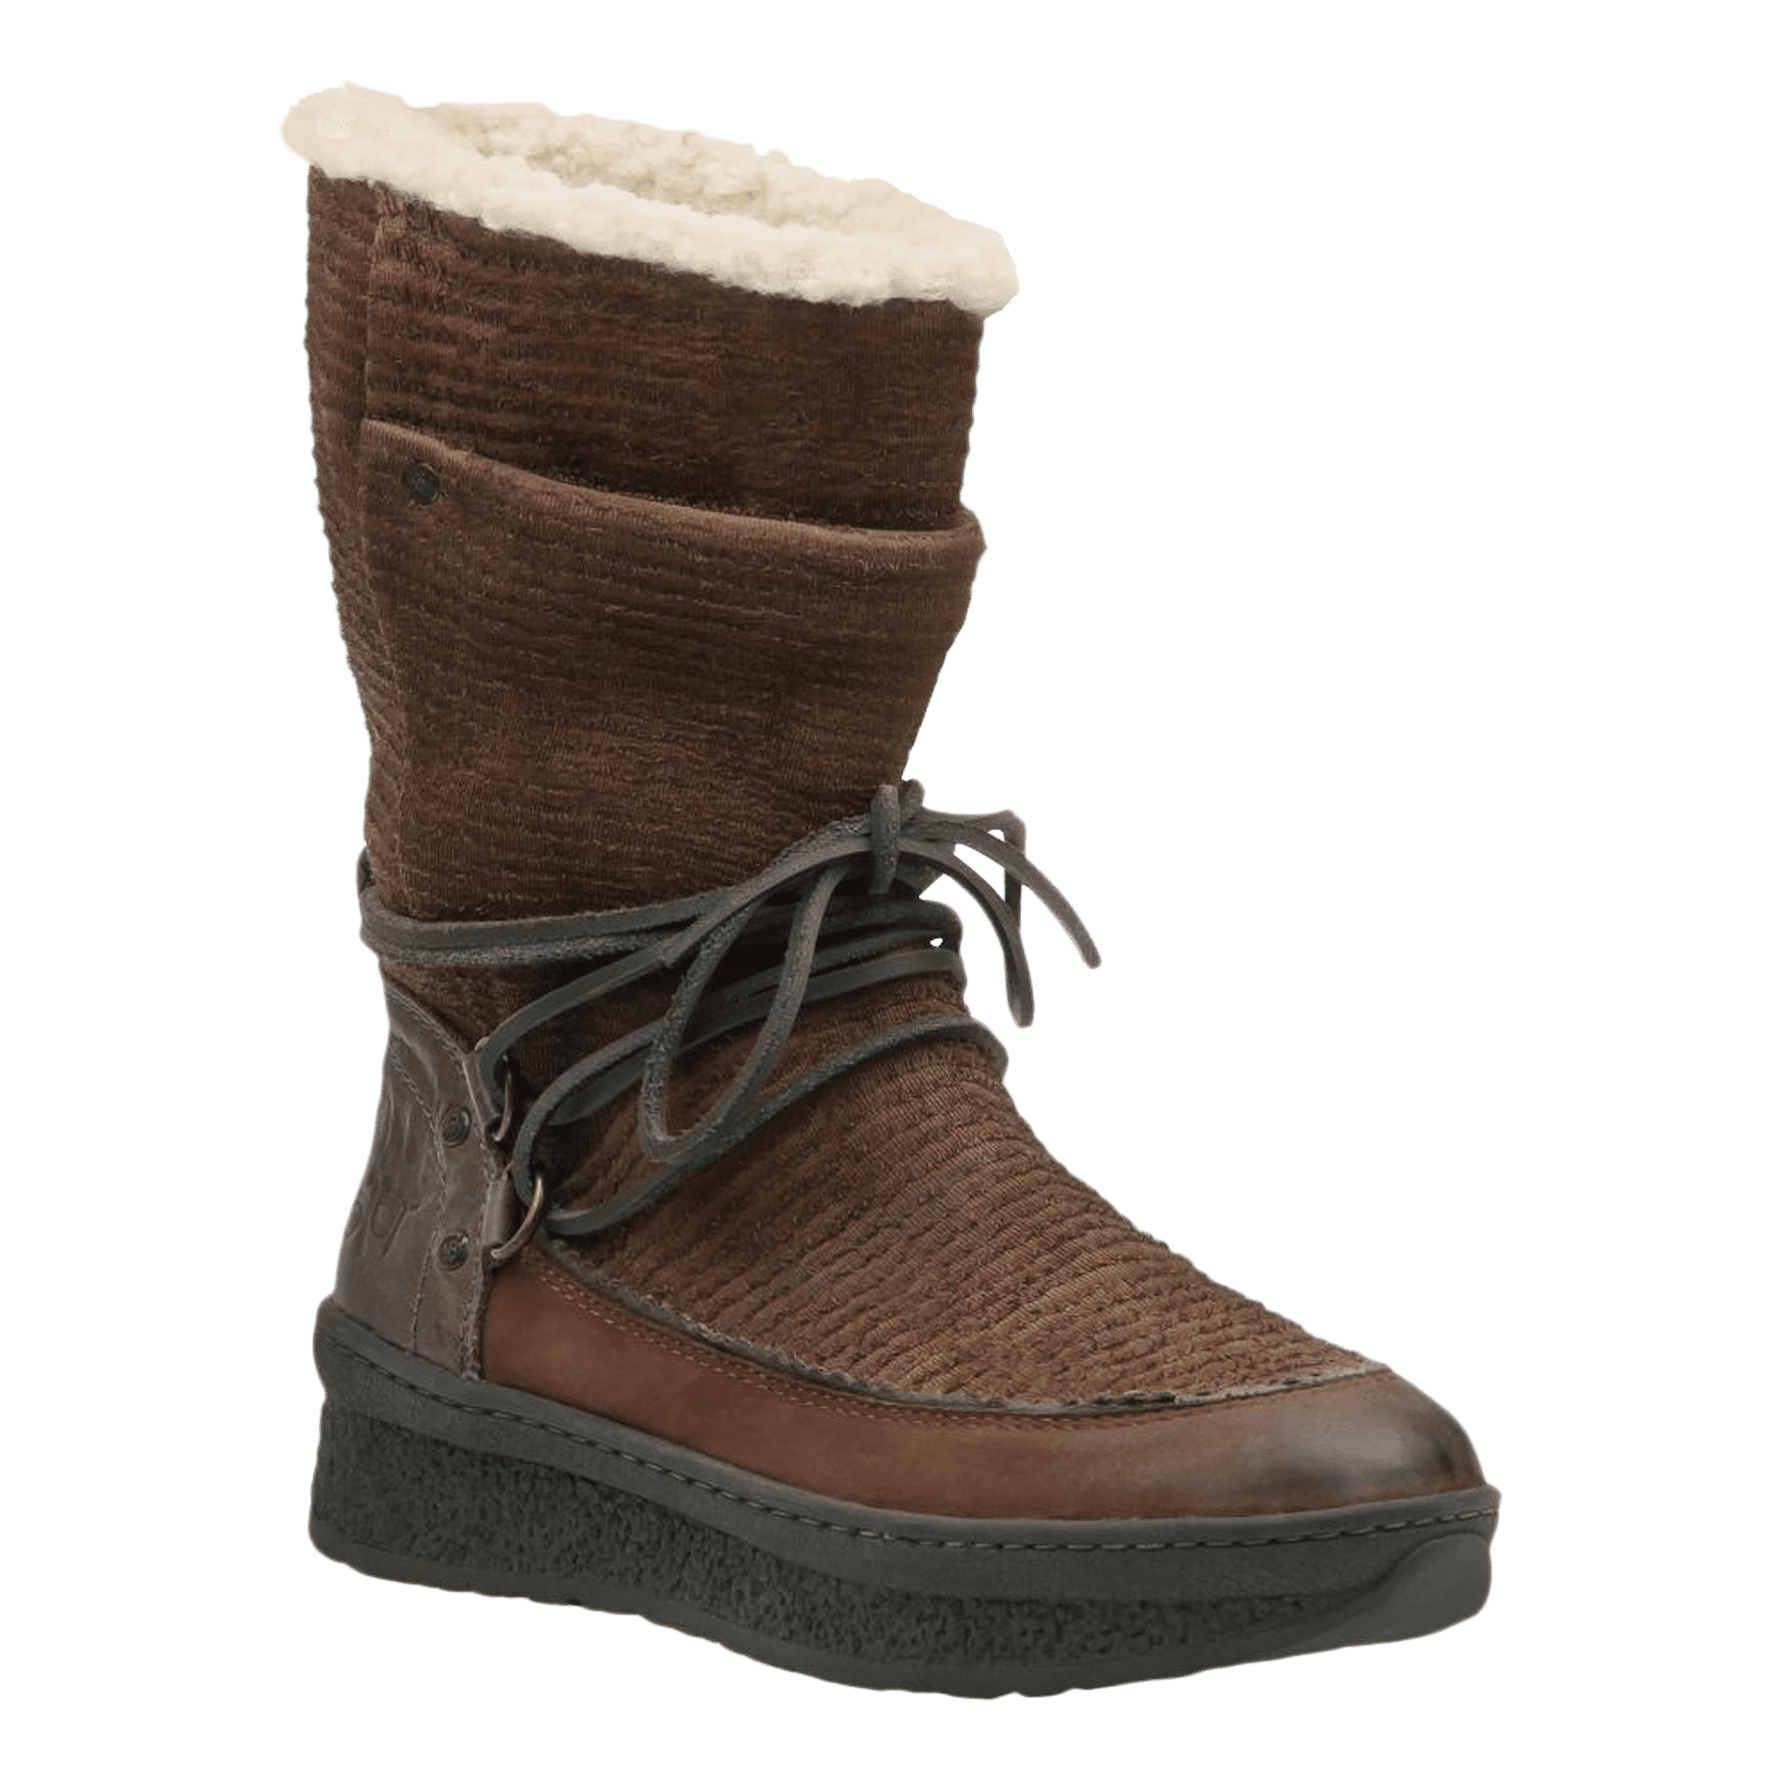 Womens cold weather boot slope in acorn